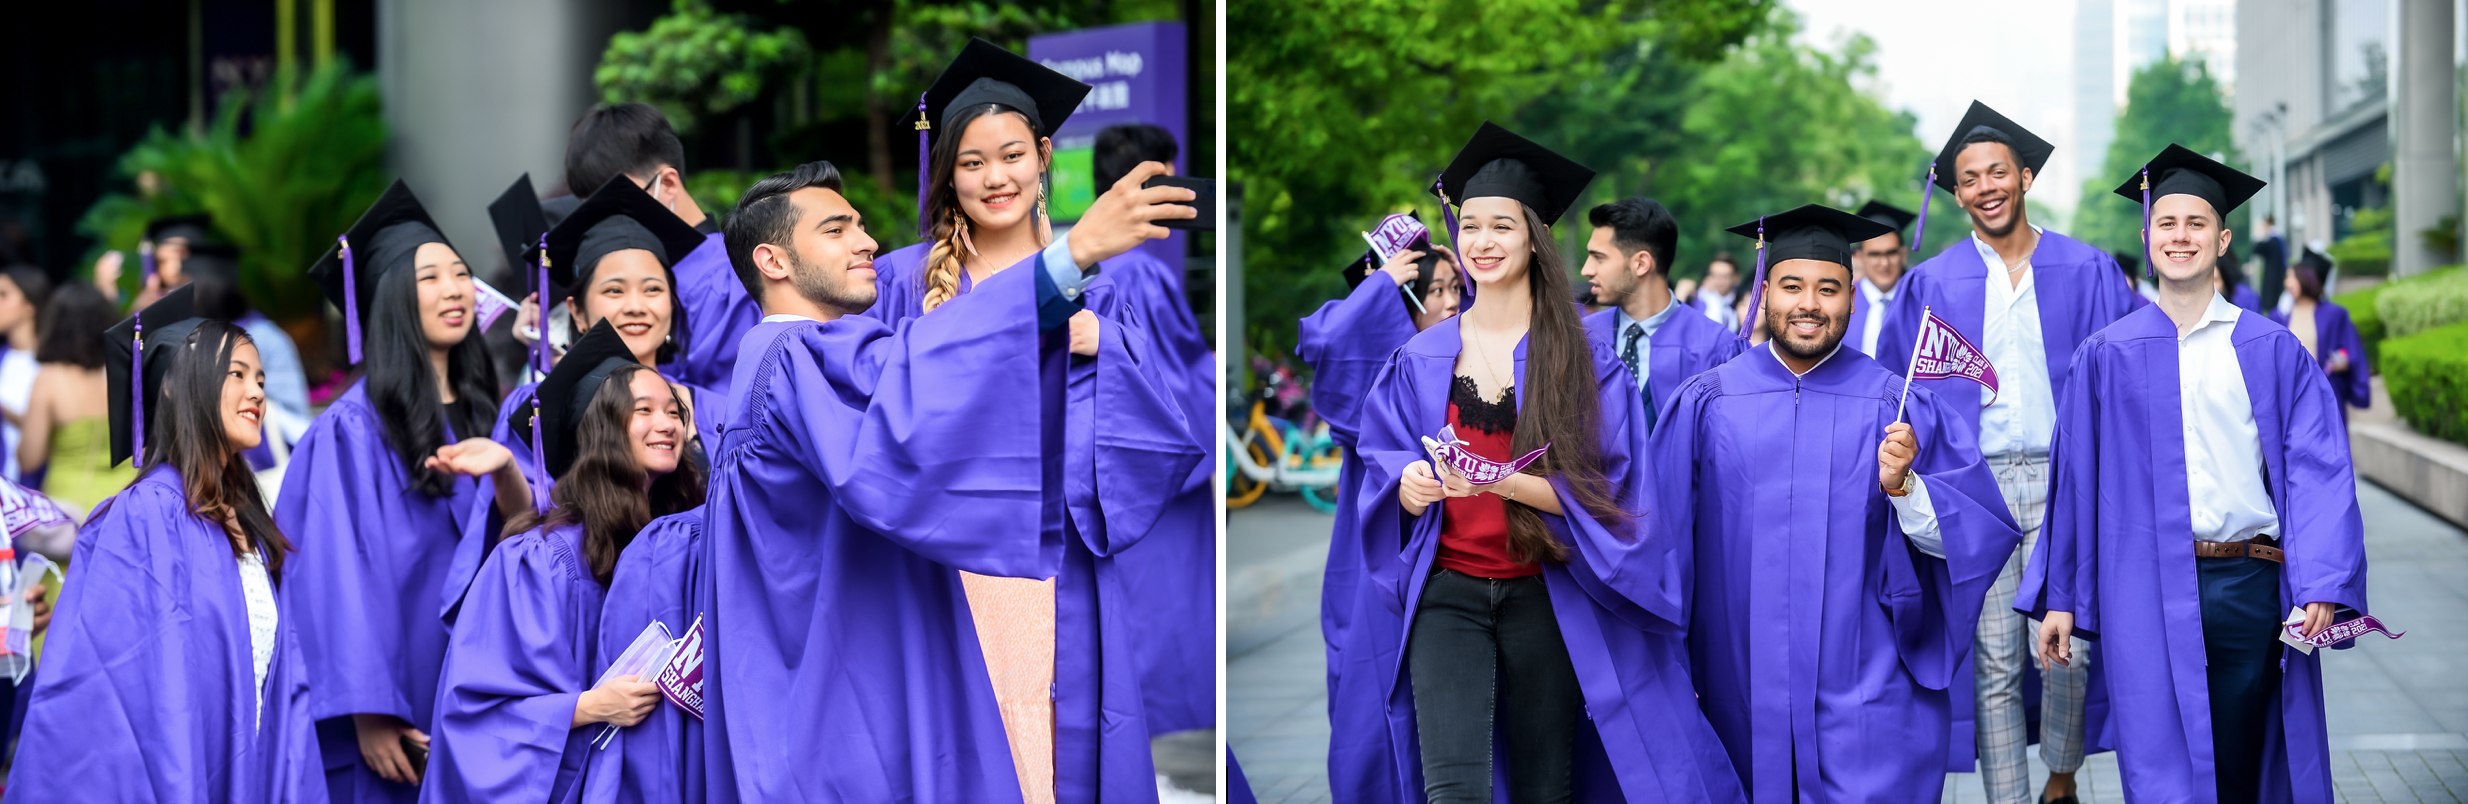 Two groups of students walk and pose together in purple graduation robes